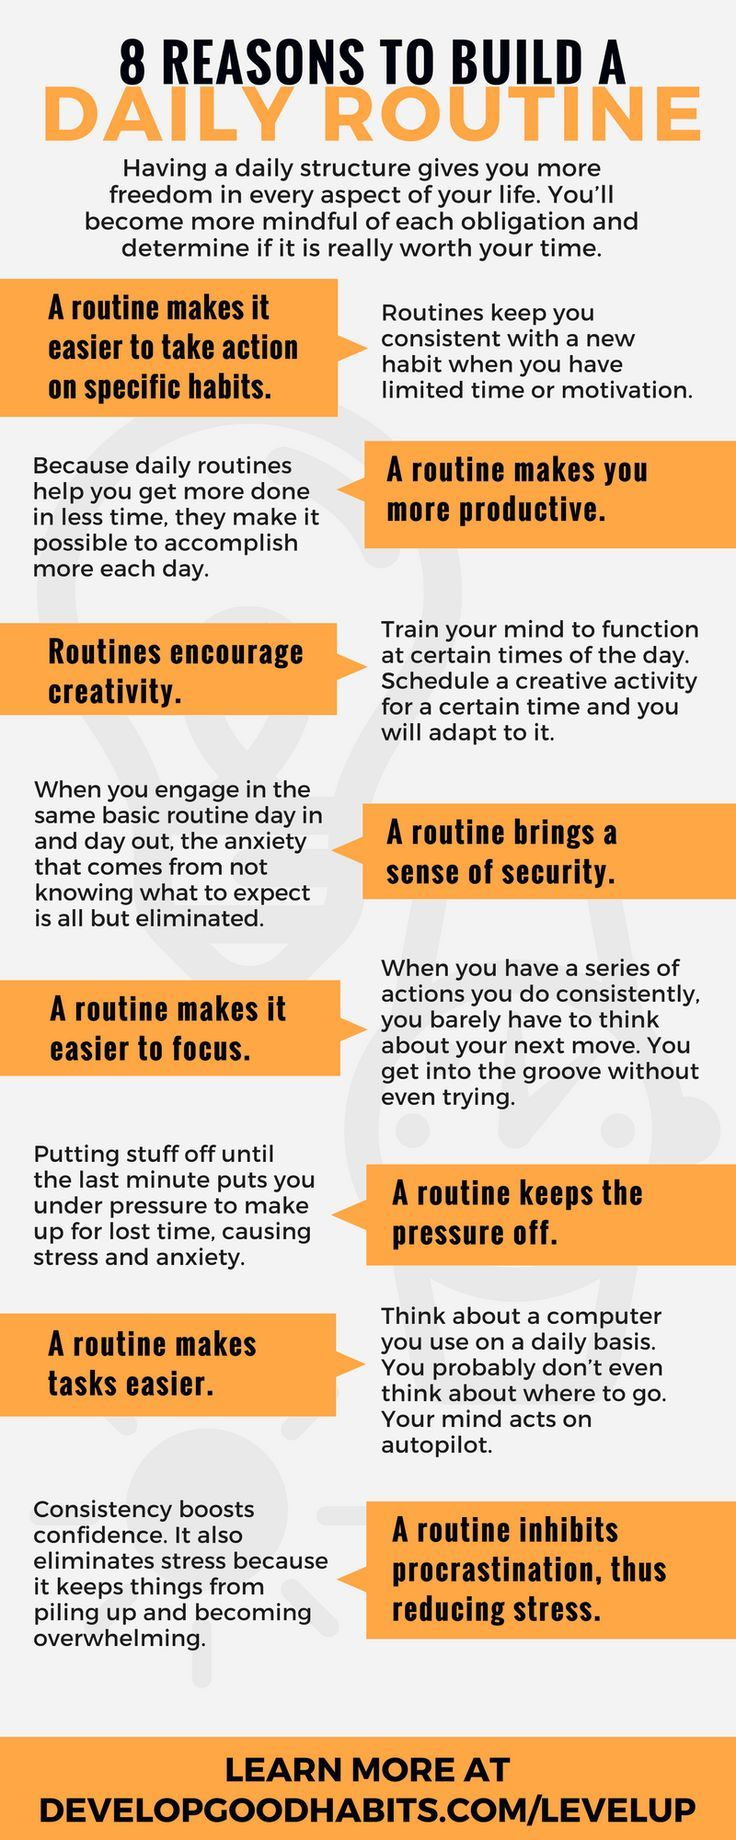 Creating your best daily routine. Reasons why (and how) to create an unstoppable daily routine. This infographic is an excerpt from the book Level Up Your day, which is about creating the perfect daily routine for success in all aspects of your life.